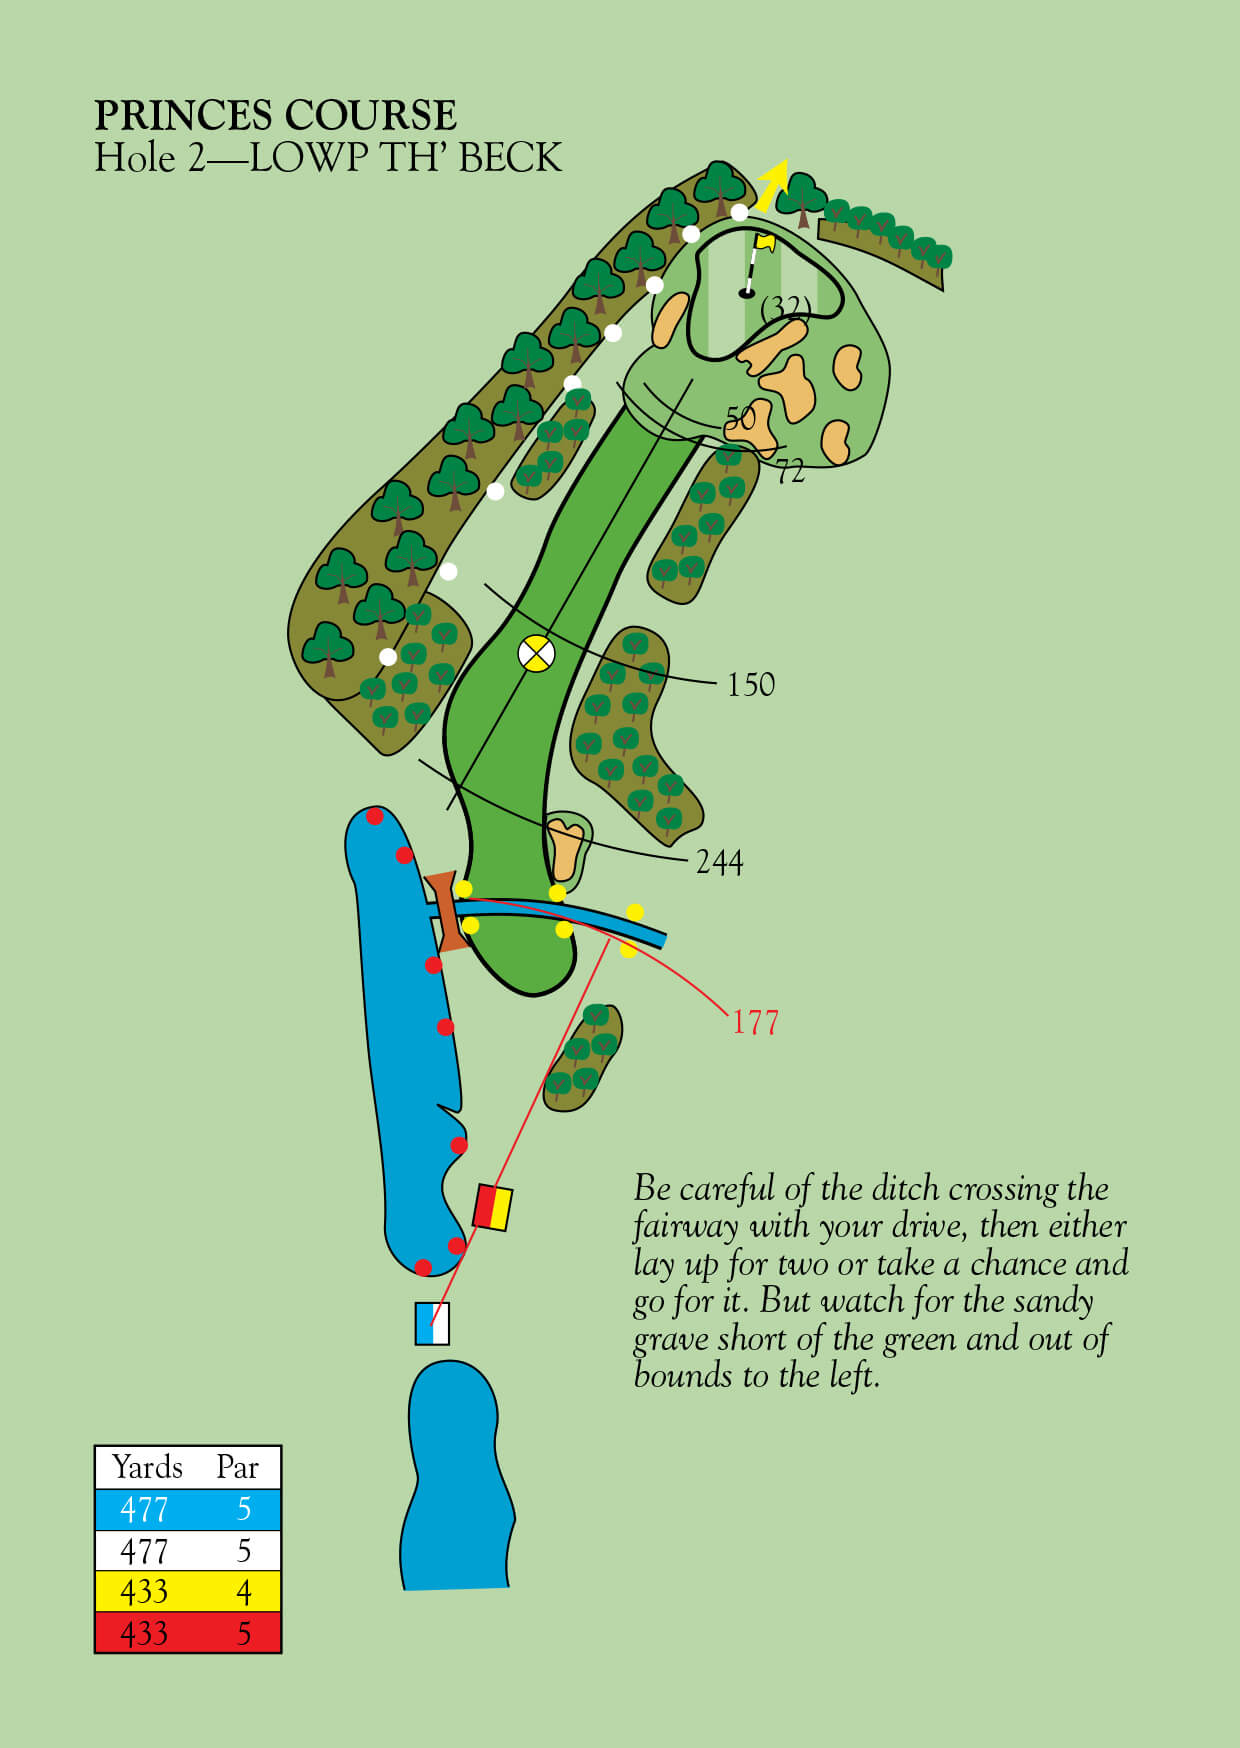 Prince Bishops Golf Course Durham Ramside Hall Club Hole Diagram View Guide